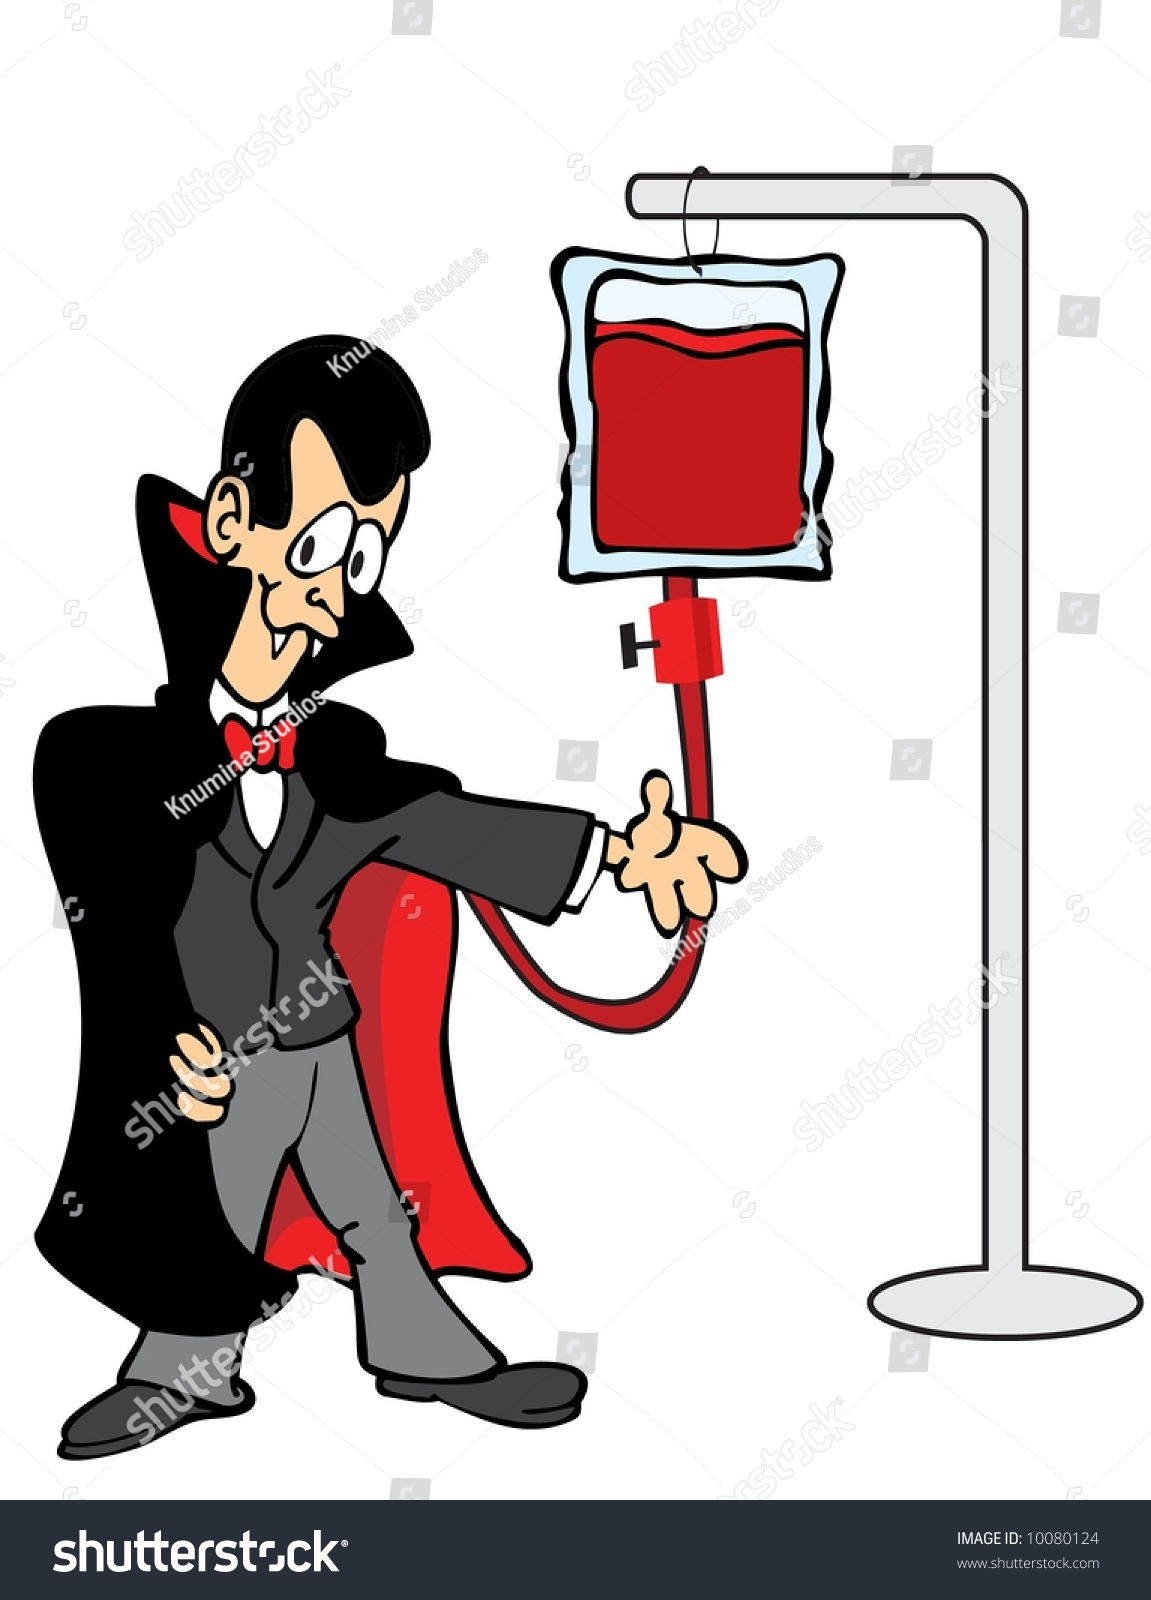 vampire donating blood stock photo 10080124 shutterstock dracula clip art craft dracula clipart black and white